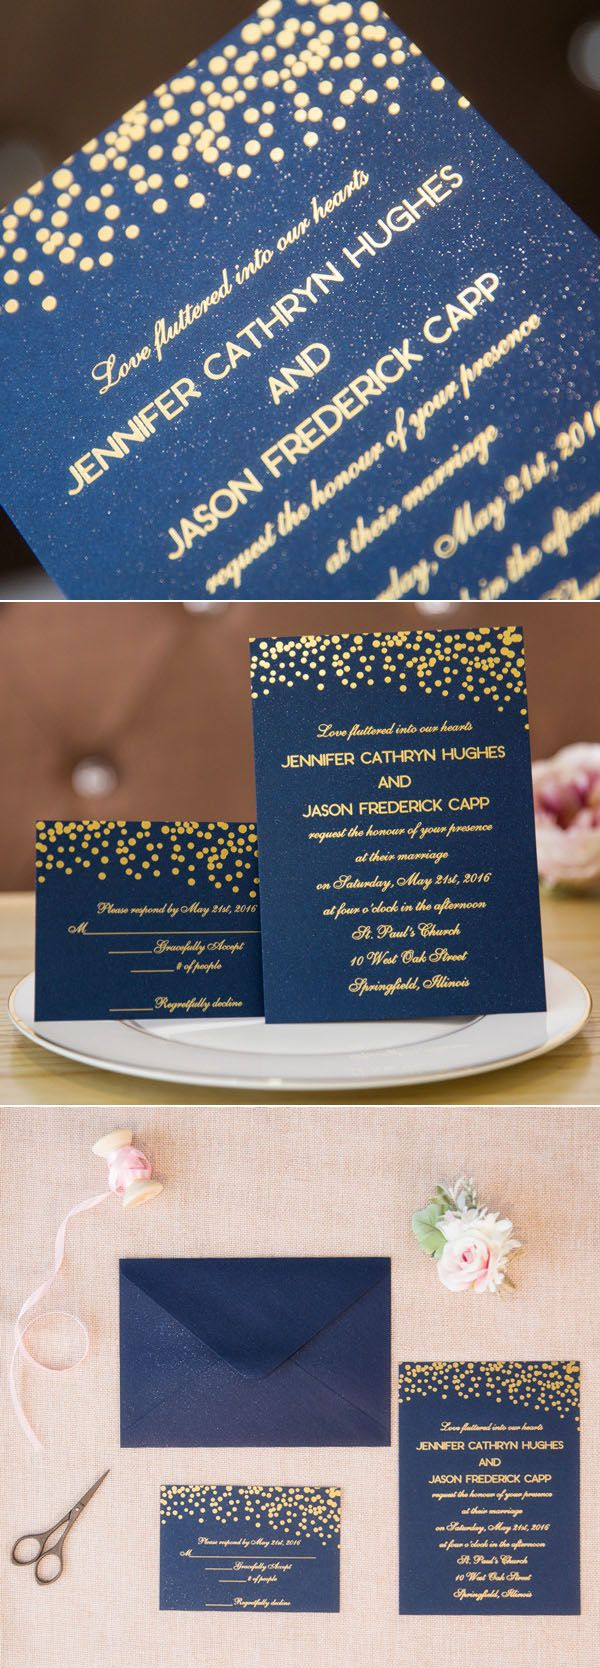 navy blue and gold foil stamped wedding invitations #weddinginvitations